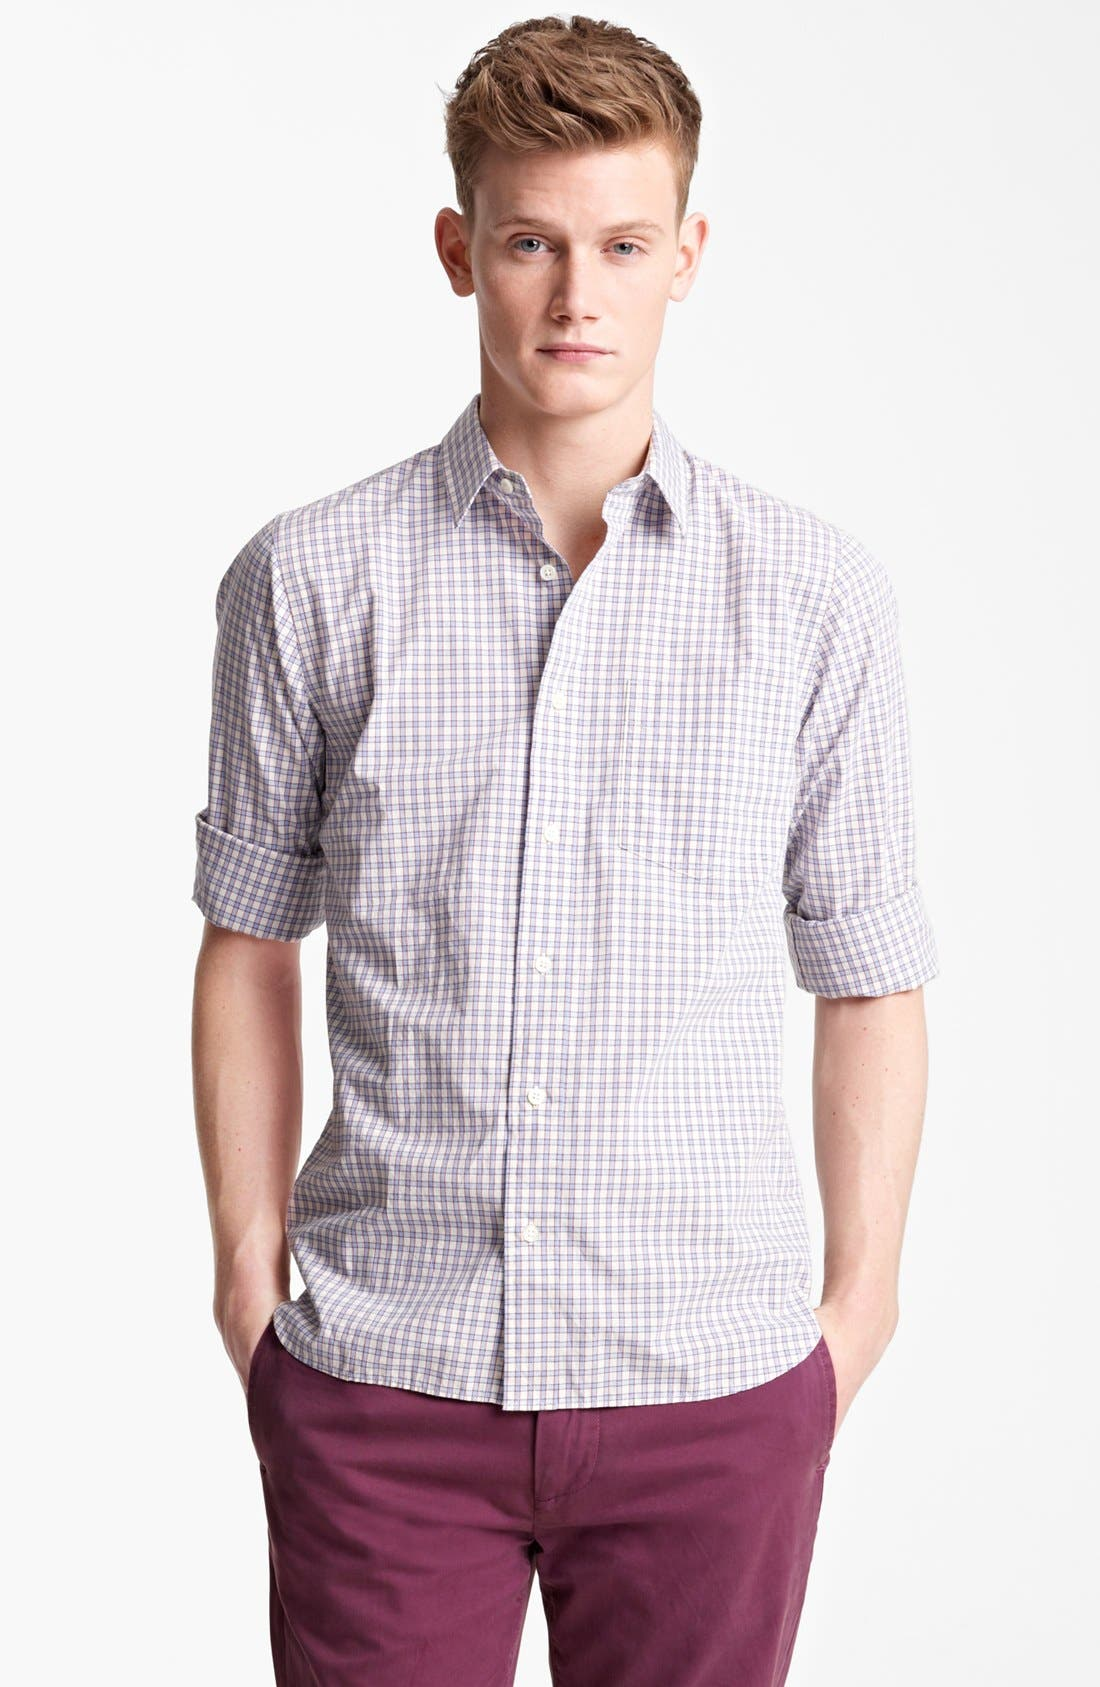 Alternate Image 1 Selected - Jack Spade 'Yates' Check Cotton Shirt